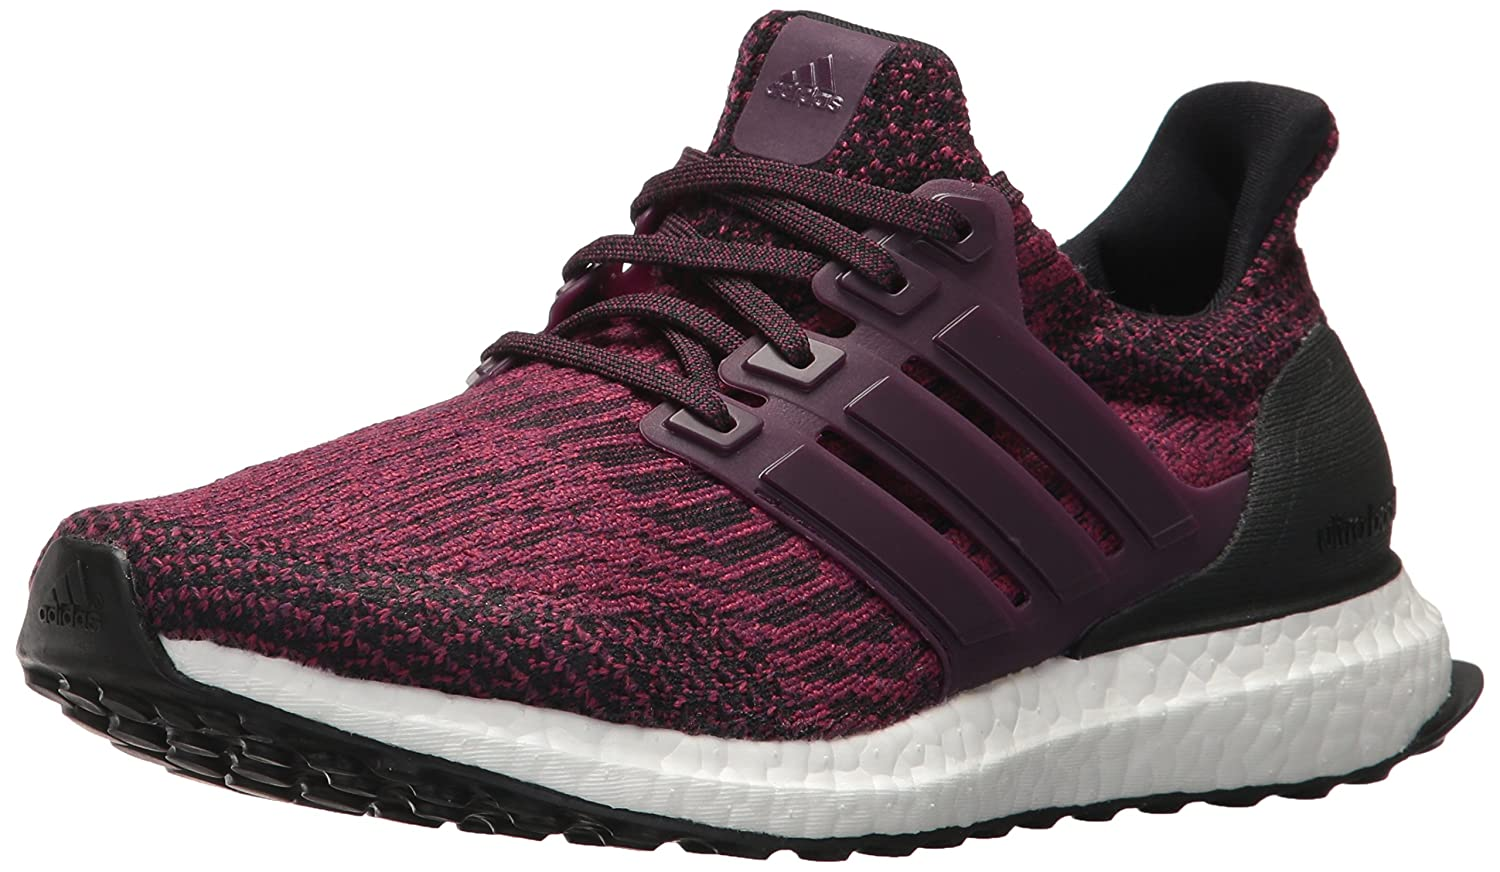 adidas Women's Ultraboost W Running Shoe B06XWZV77K 11.5 B(M) US|Red Night/Red Night/Black